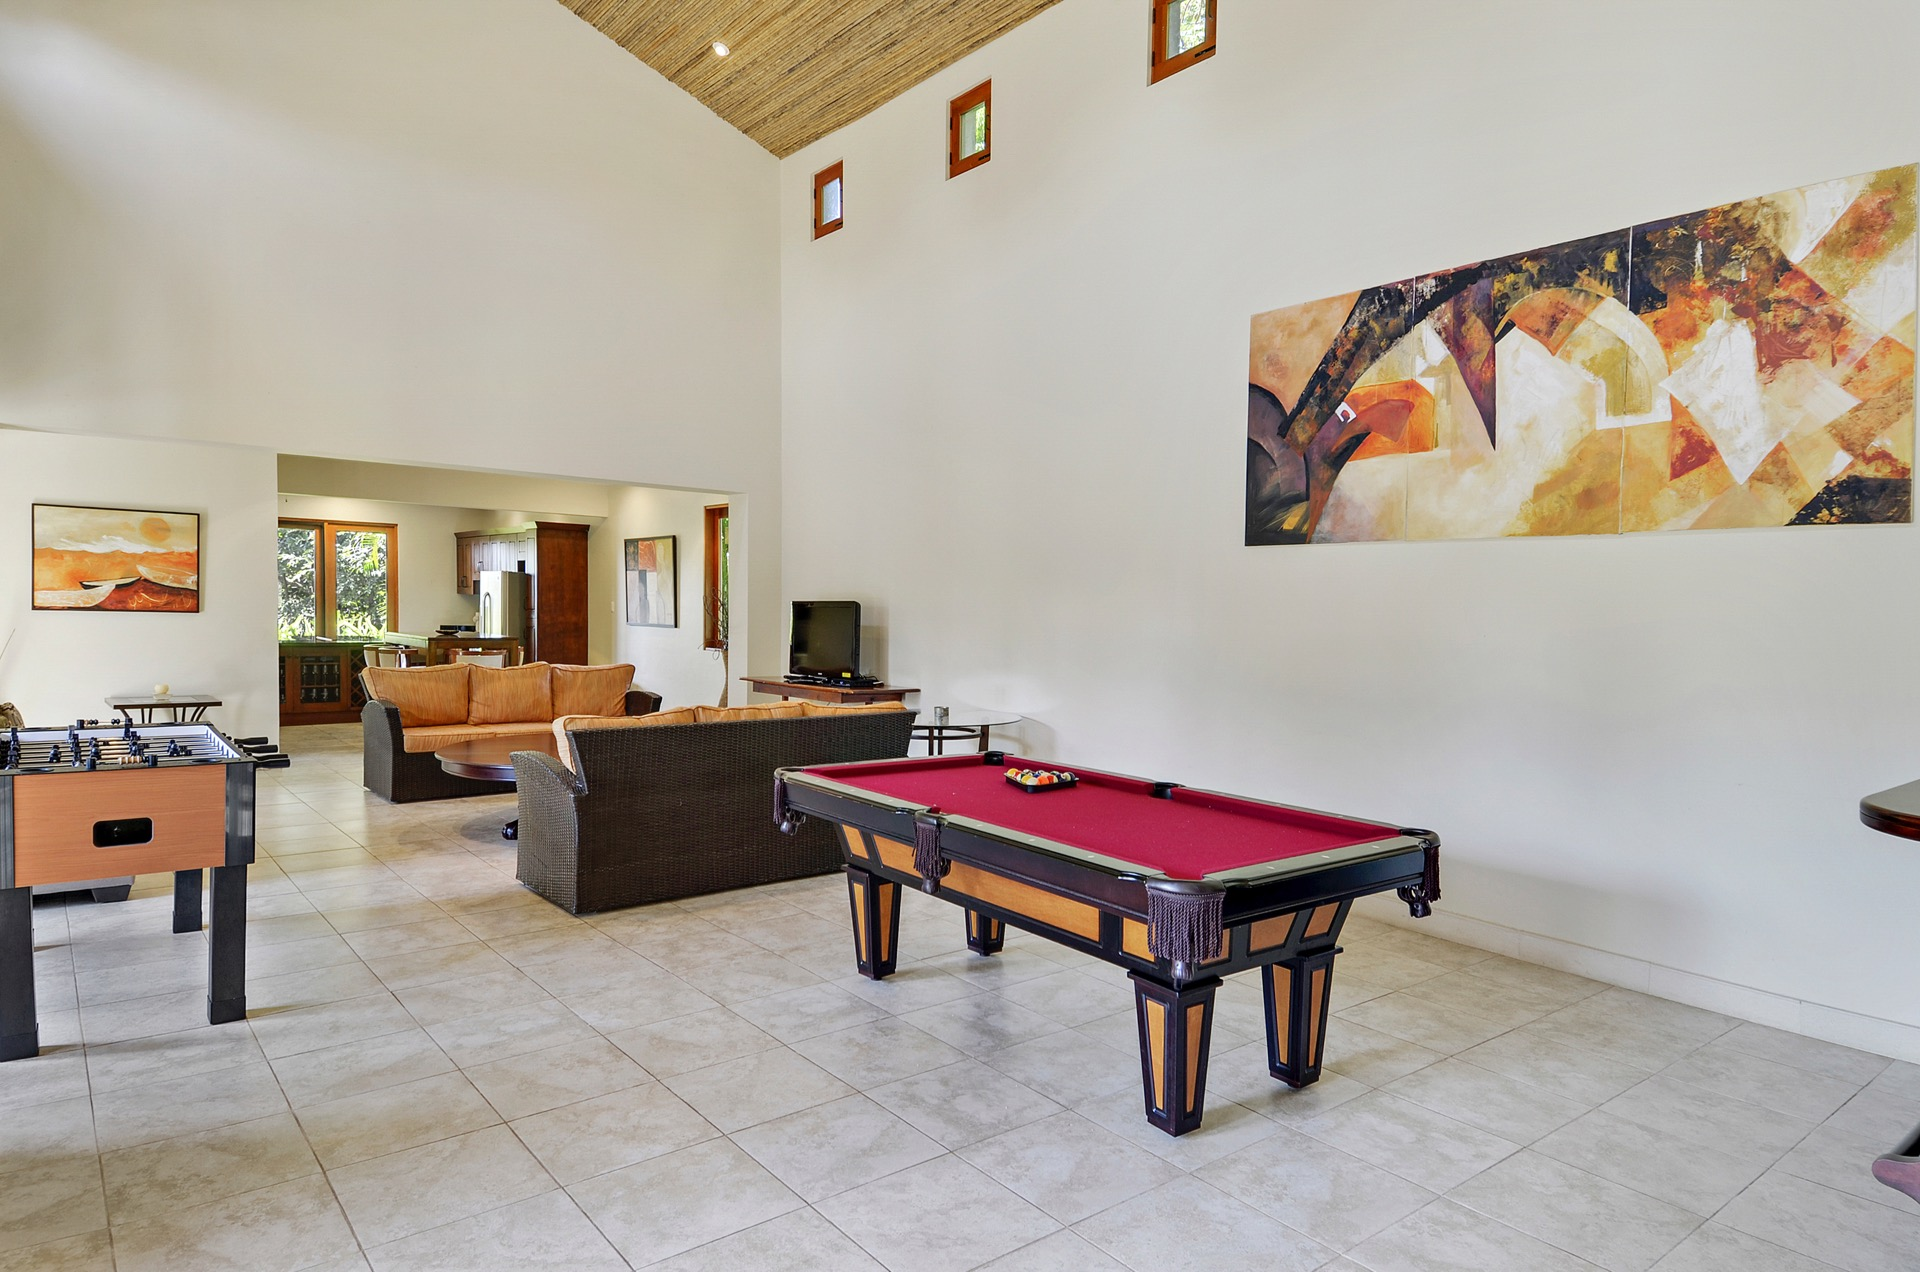 Living room with games for kids! (Pool and Foosball)